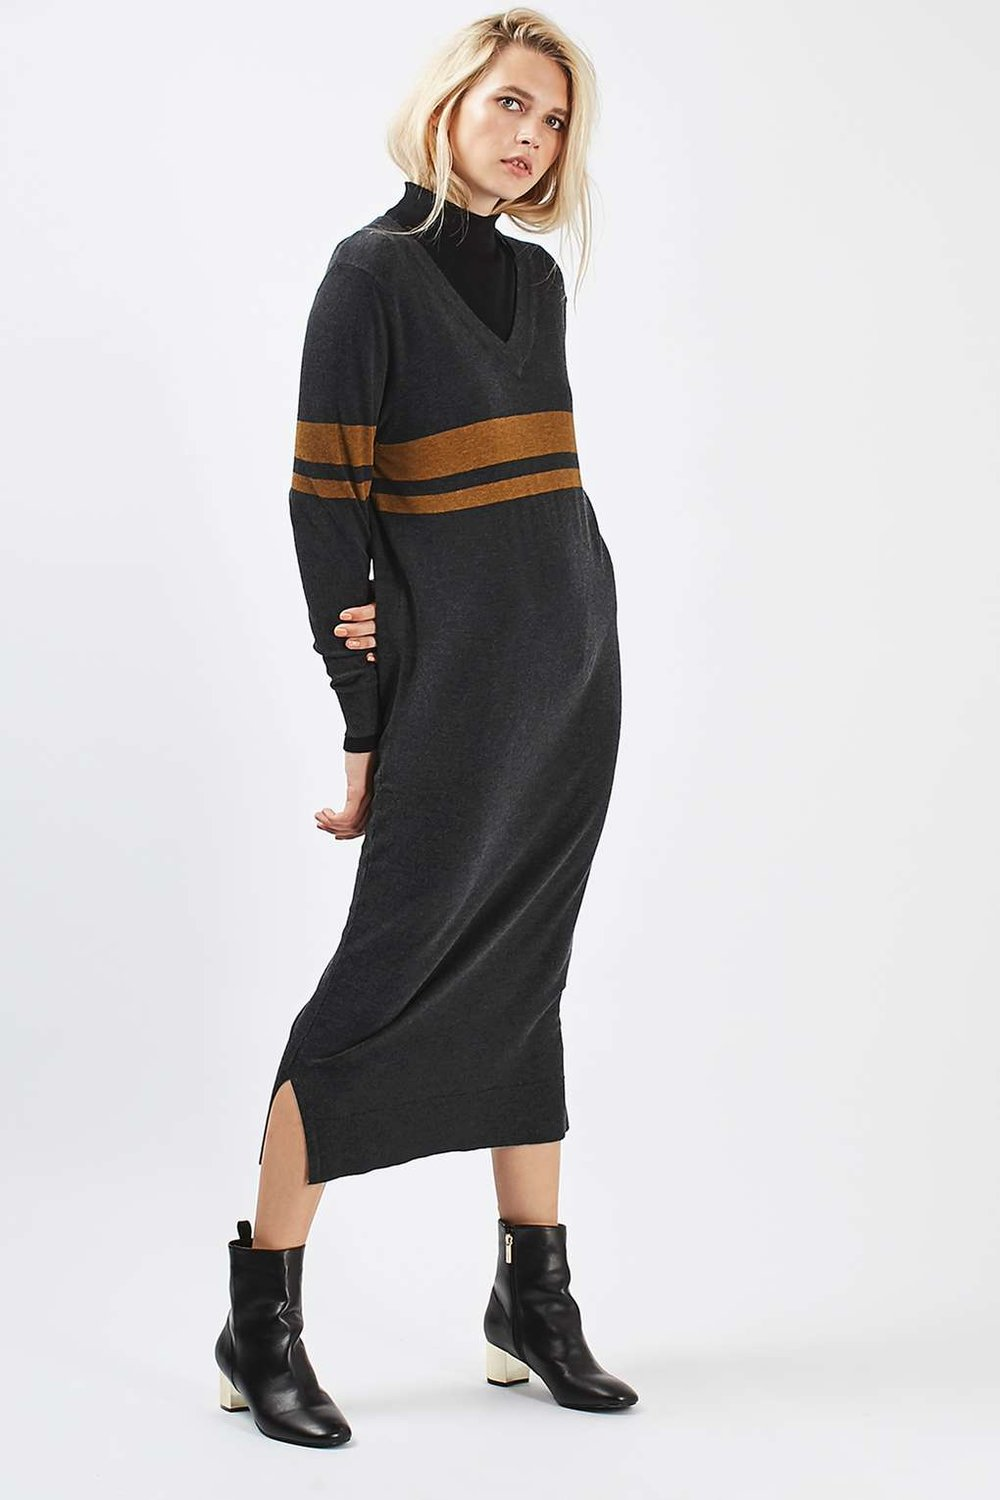 Topshop sweater dress.jpg